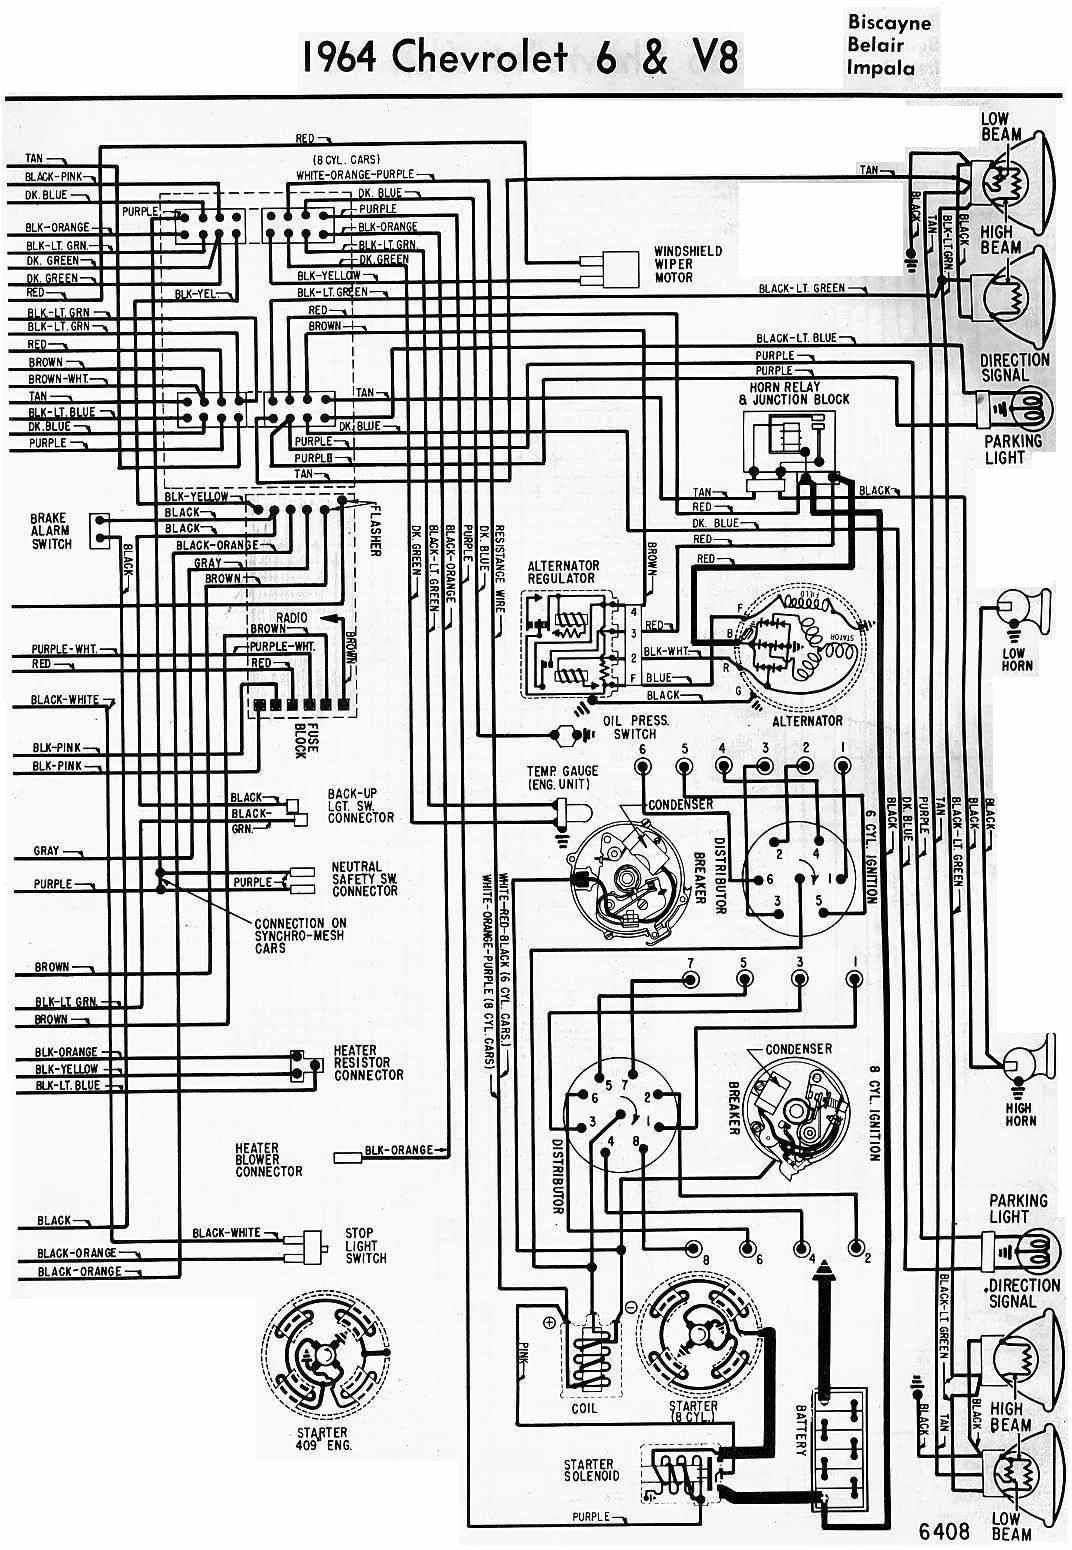 General Wiring Diagram For 1959 Chevrolet Passenger Car